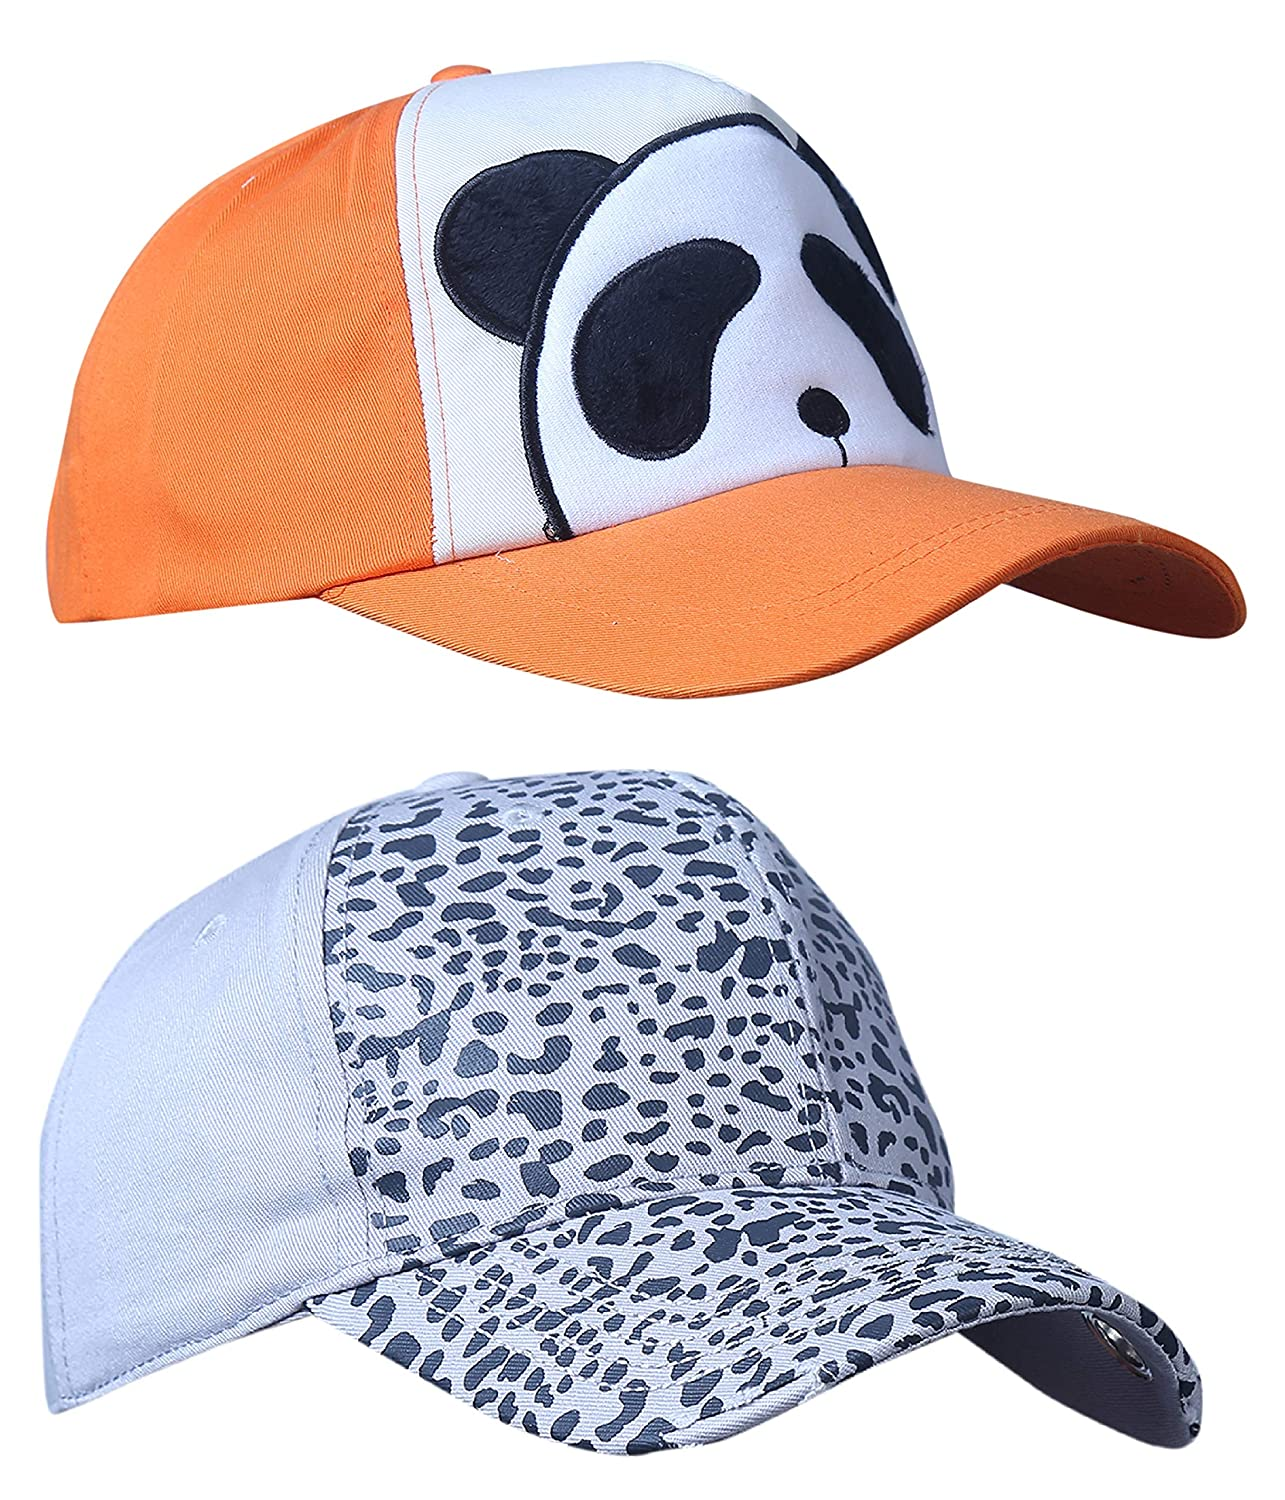 5945a058084 Zacharias Unisex Cotton Printed Baseball Cap Pack of 2 Free Size 5926   Amazon.in  Clothing   Accessories